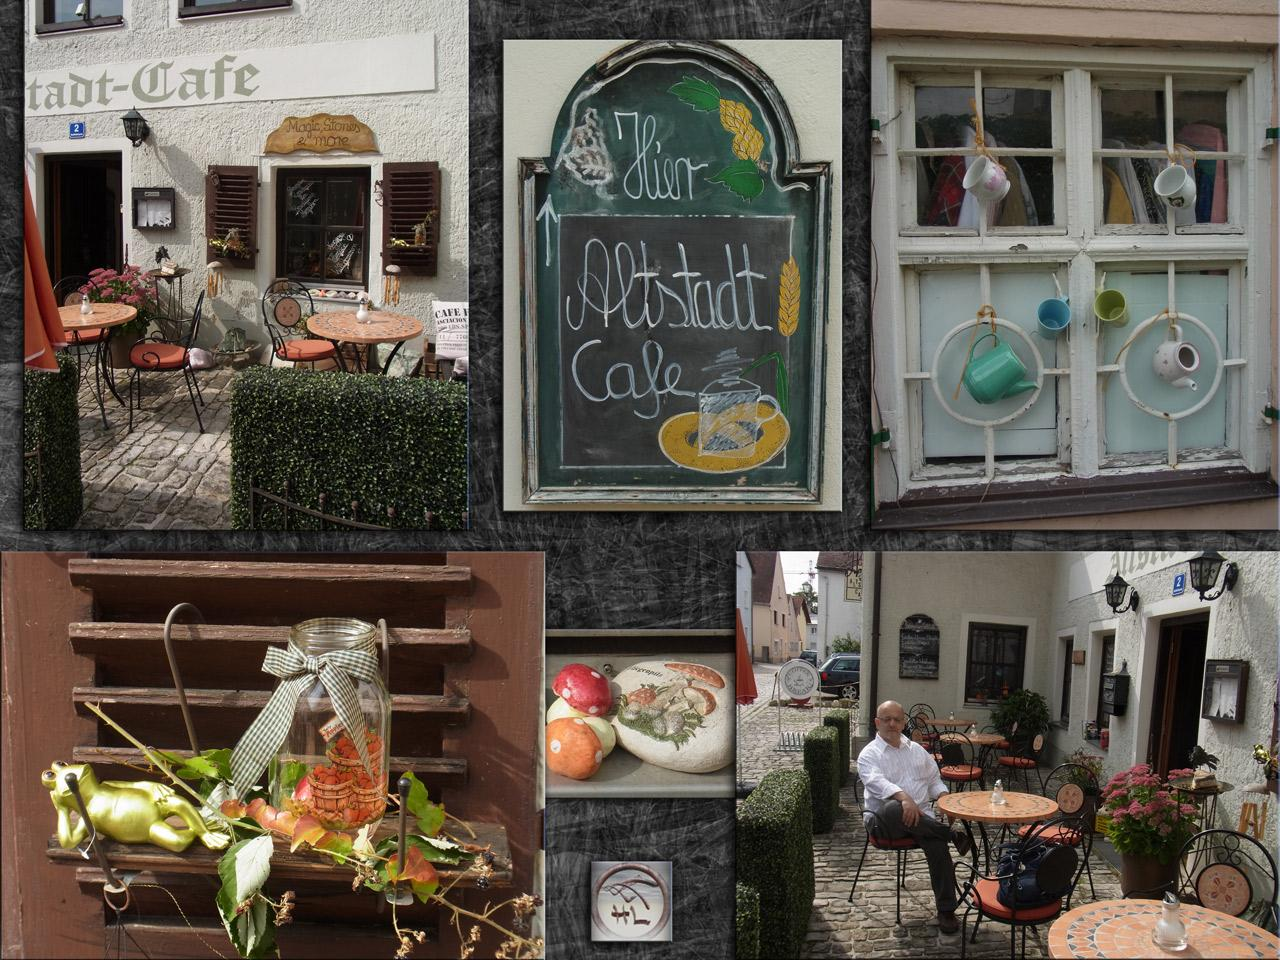 Altstadt-Cafe in Beilngries / Bavaria